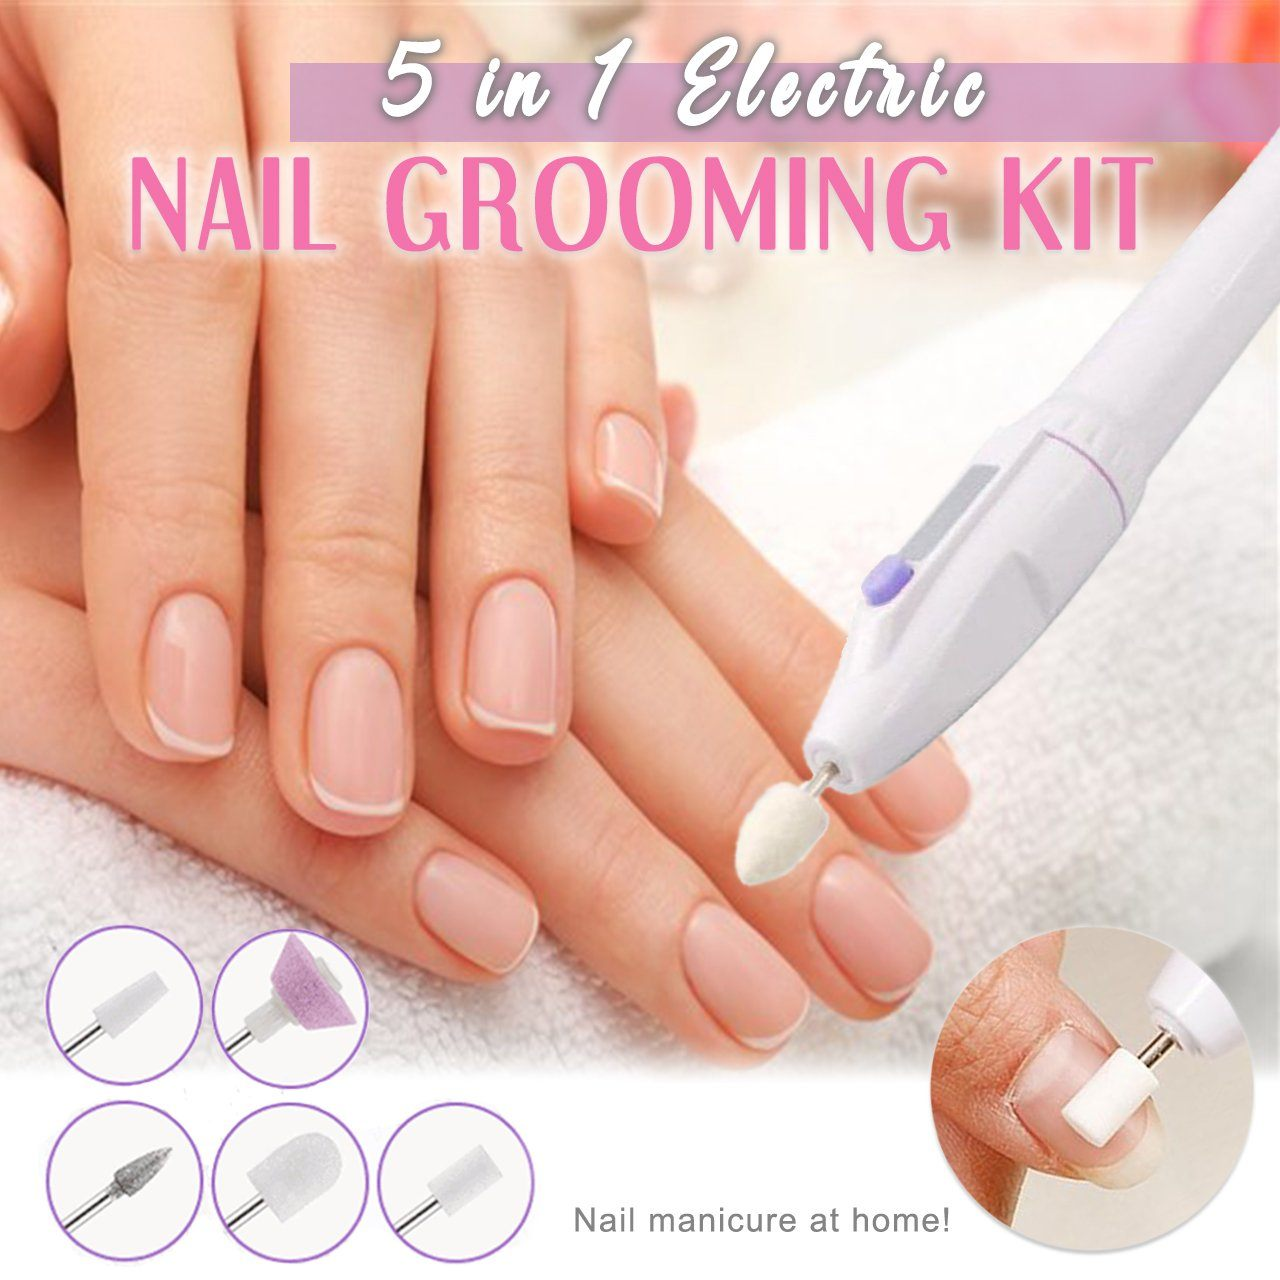 5-in-1 Electric Nail Grooming Kit